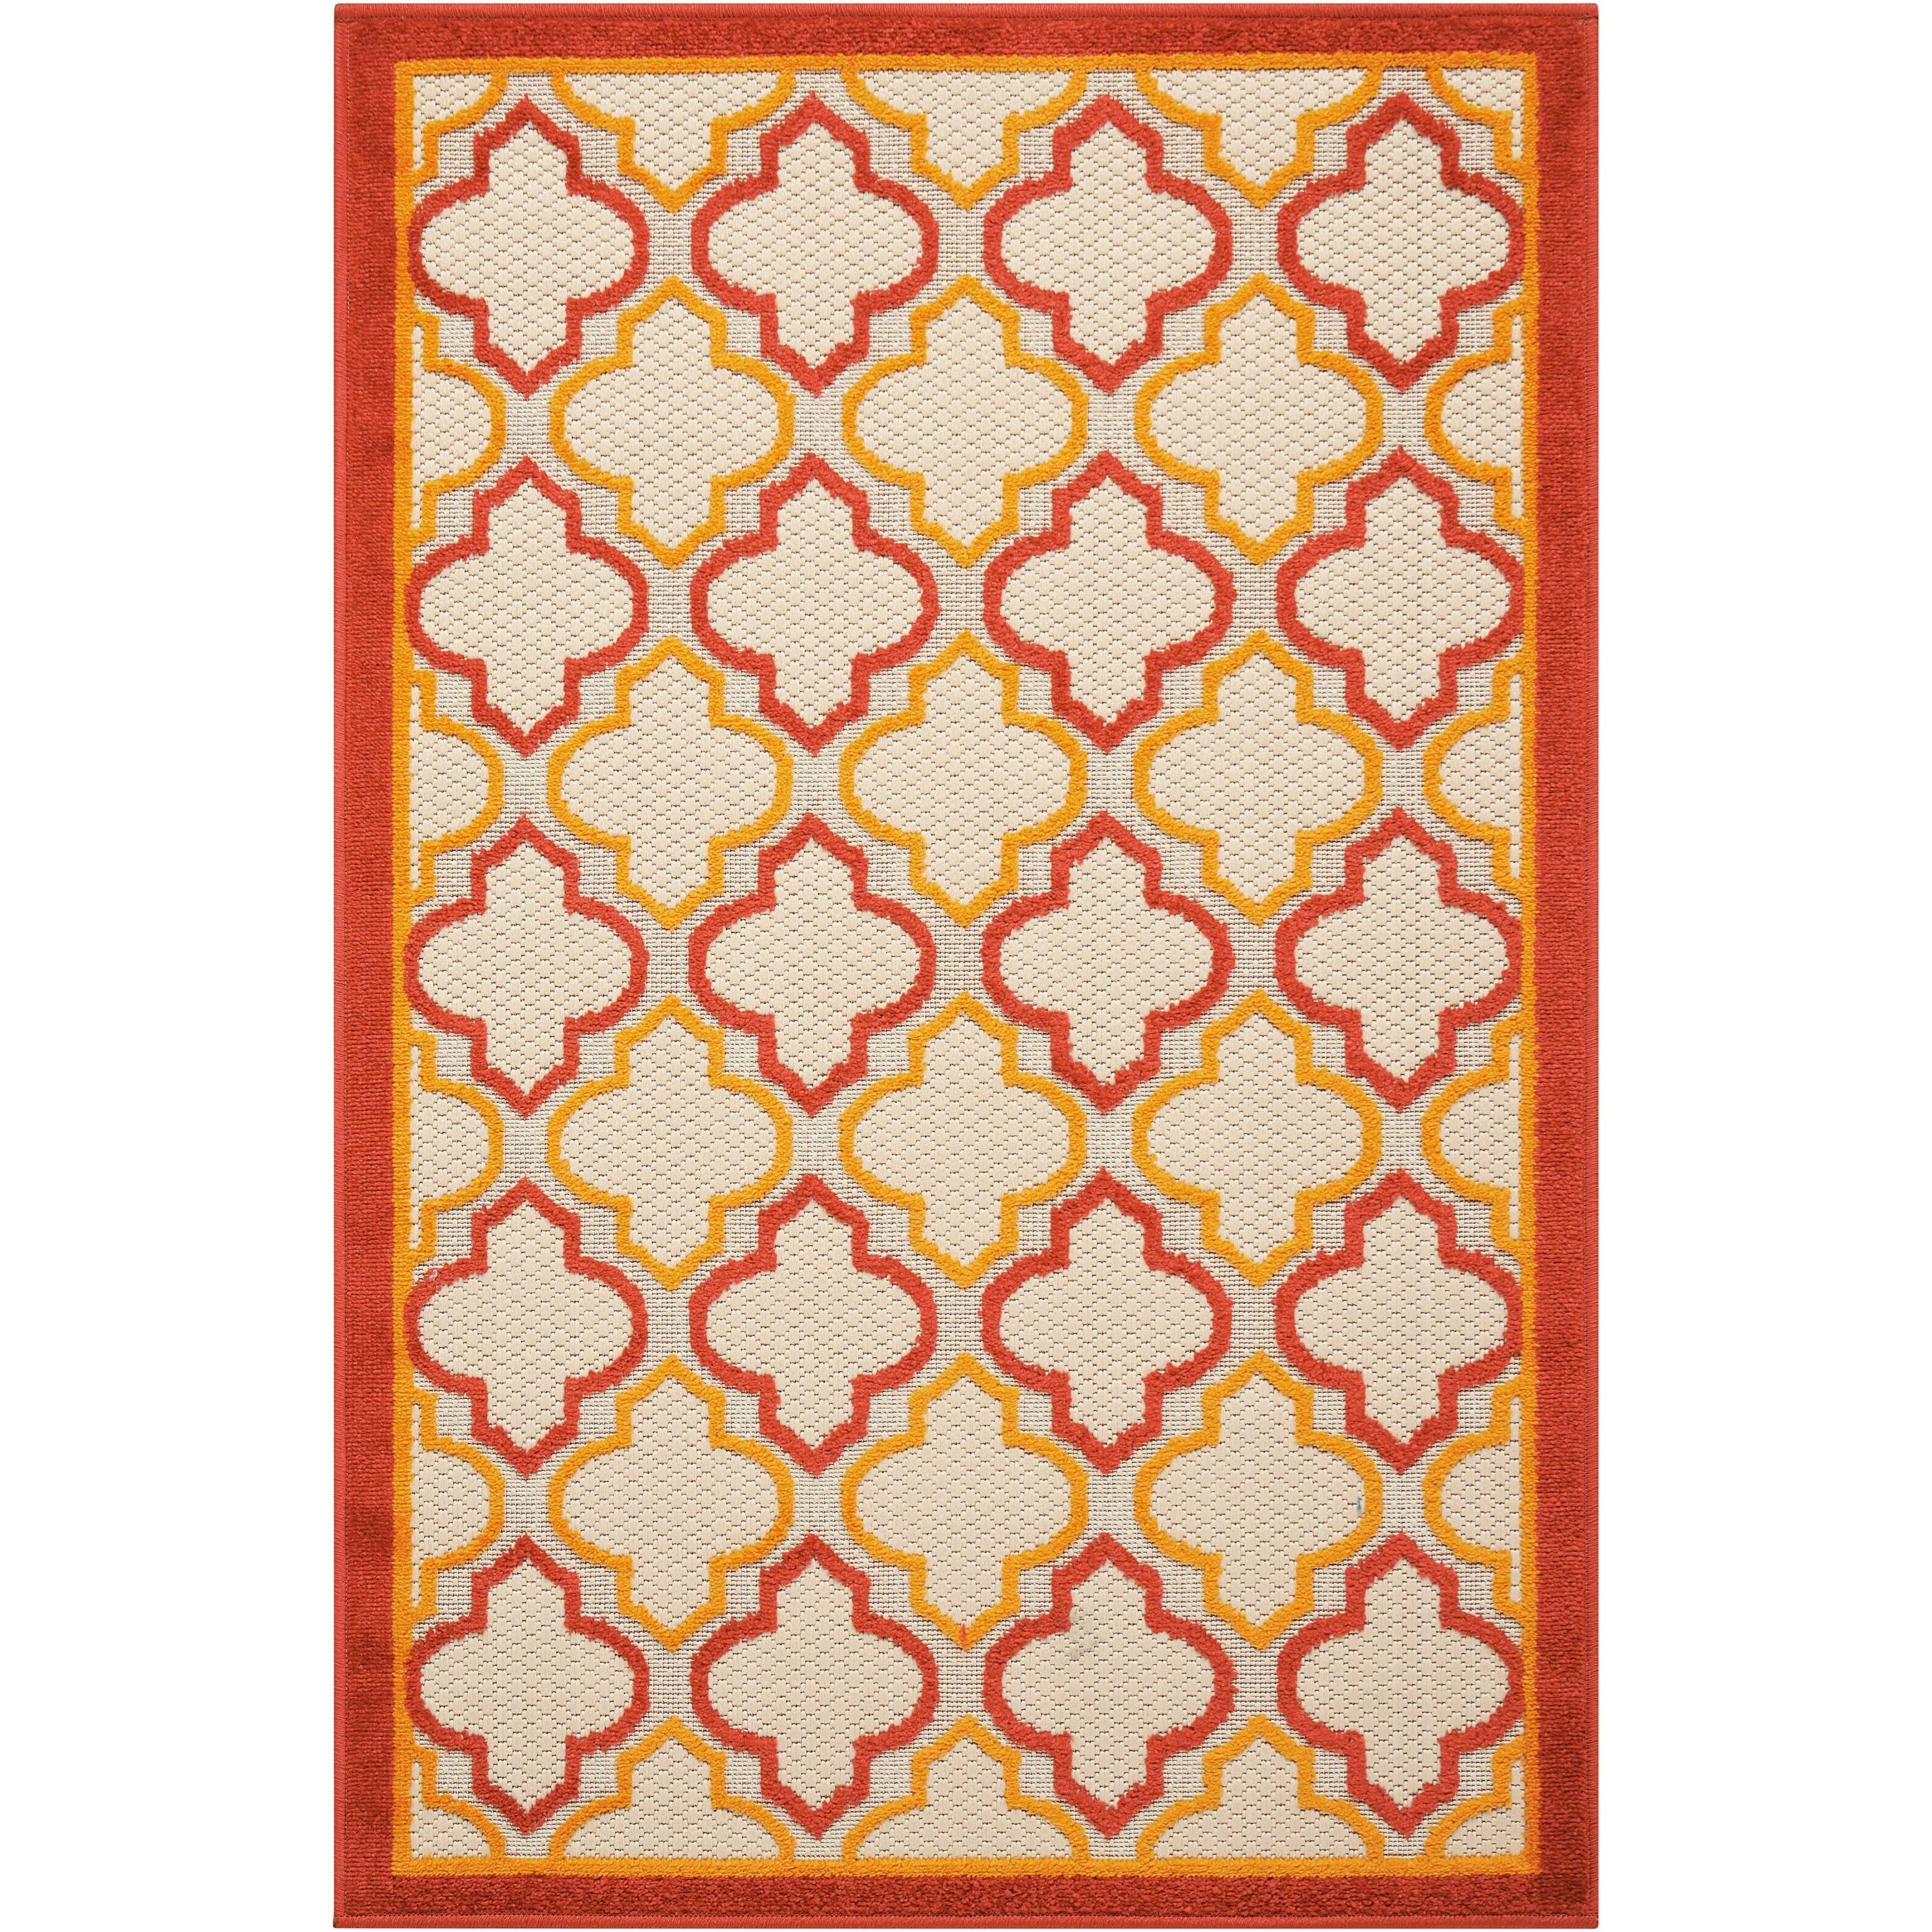 "2'8"" x 4' Red Rectangle Rug"